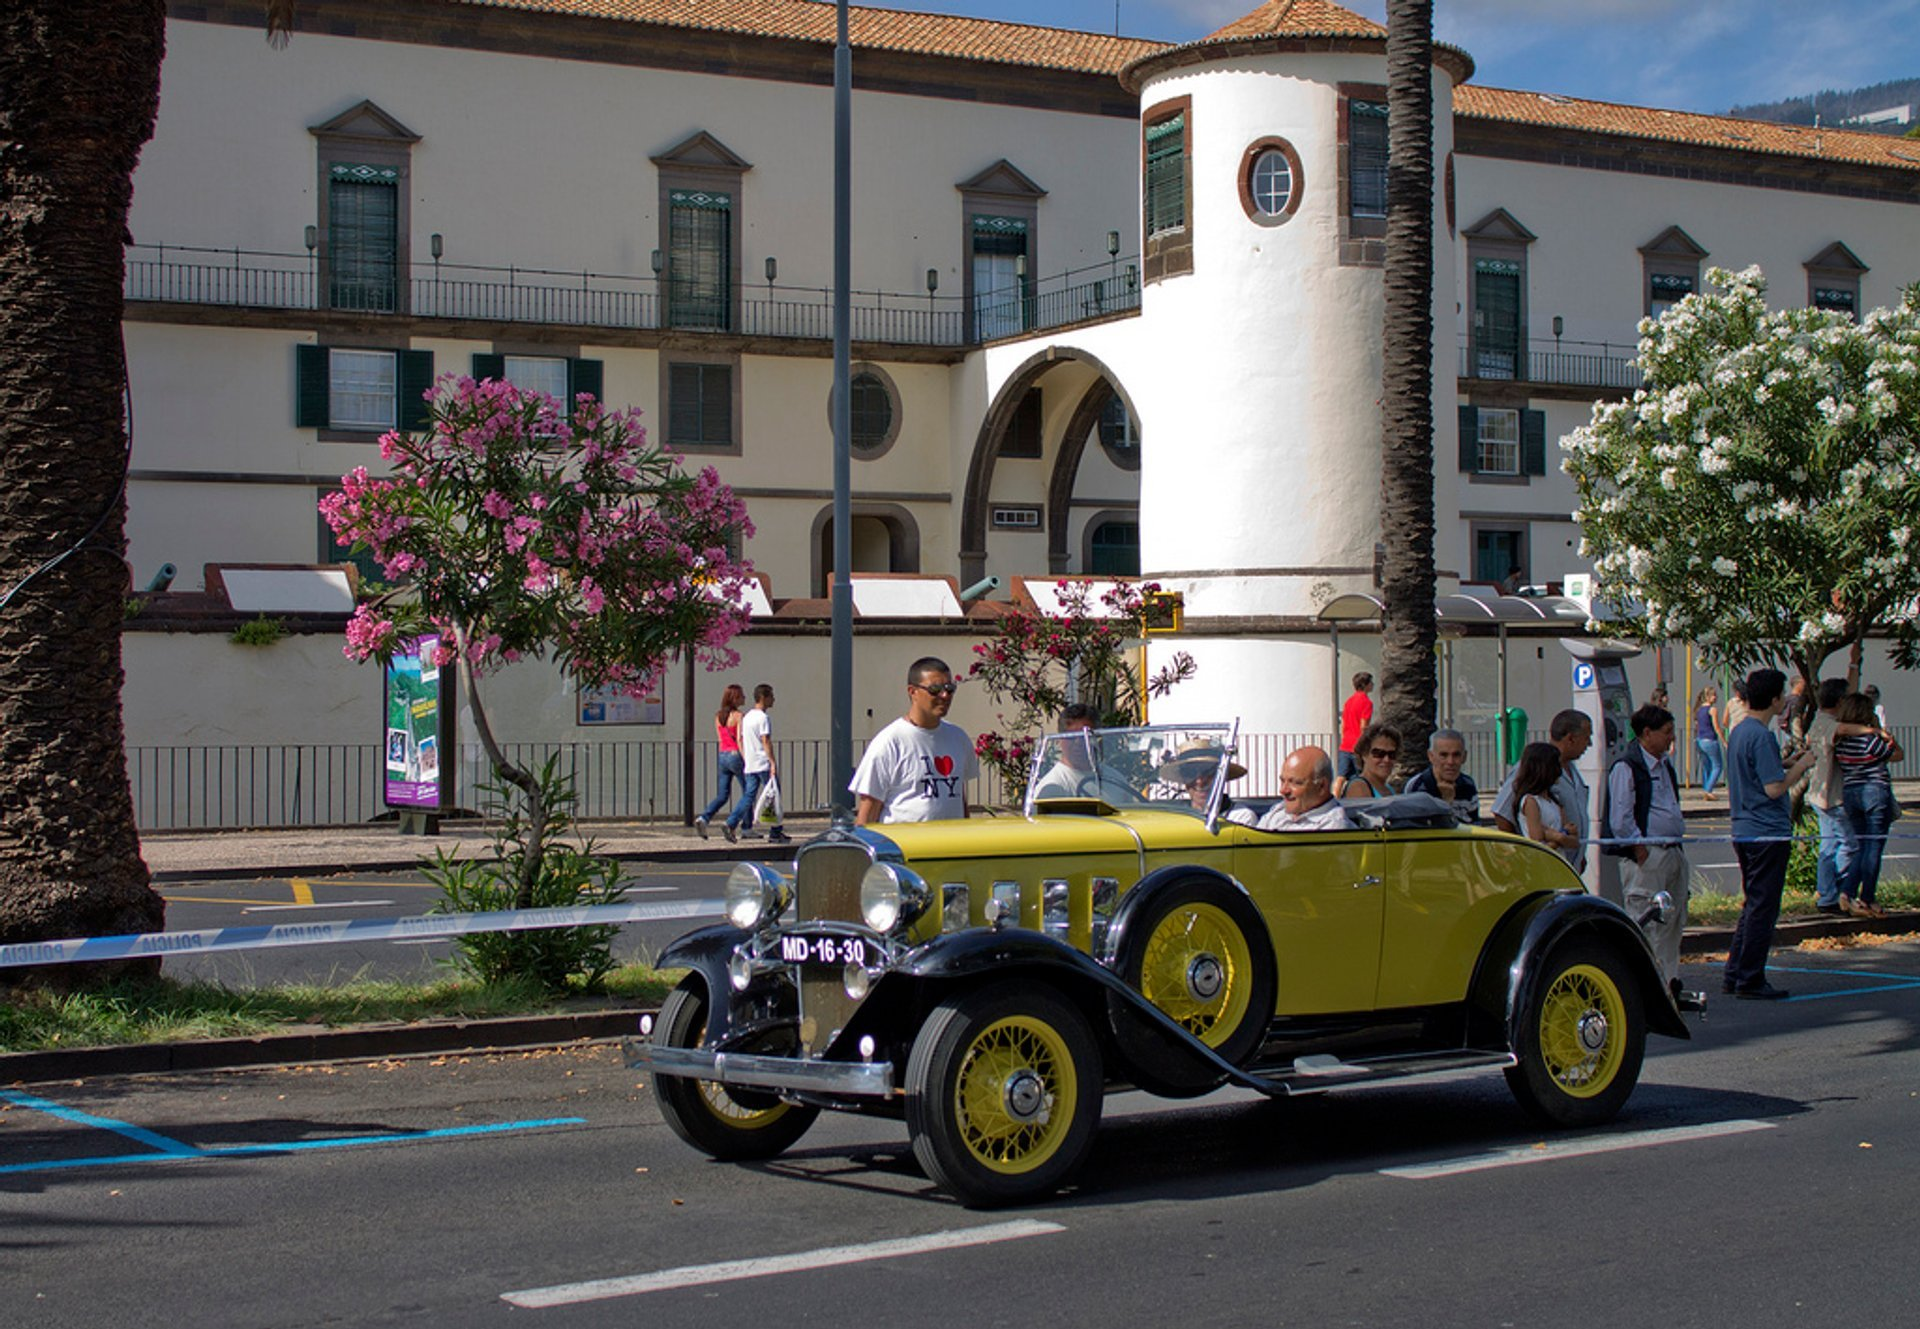 Funchal Classic Car Exhibition in Madeira - Best Season 2019